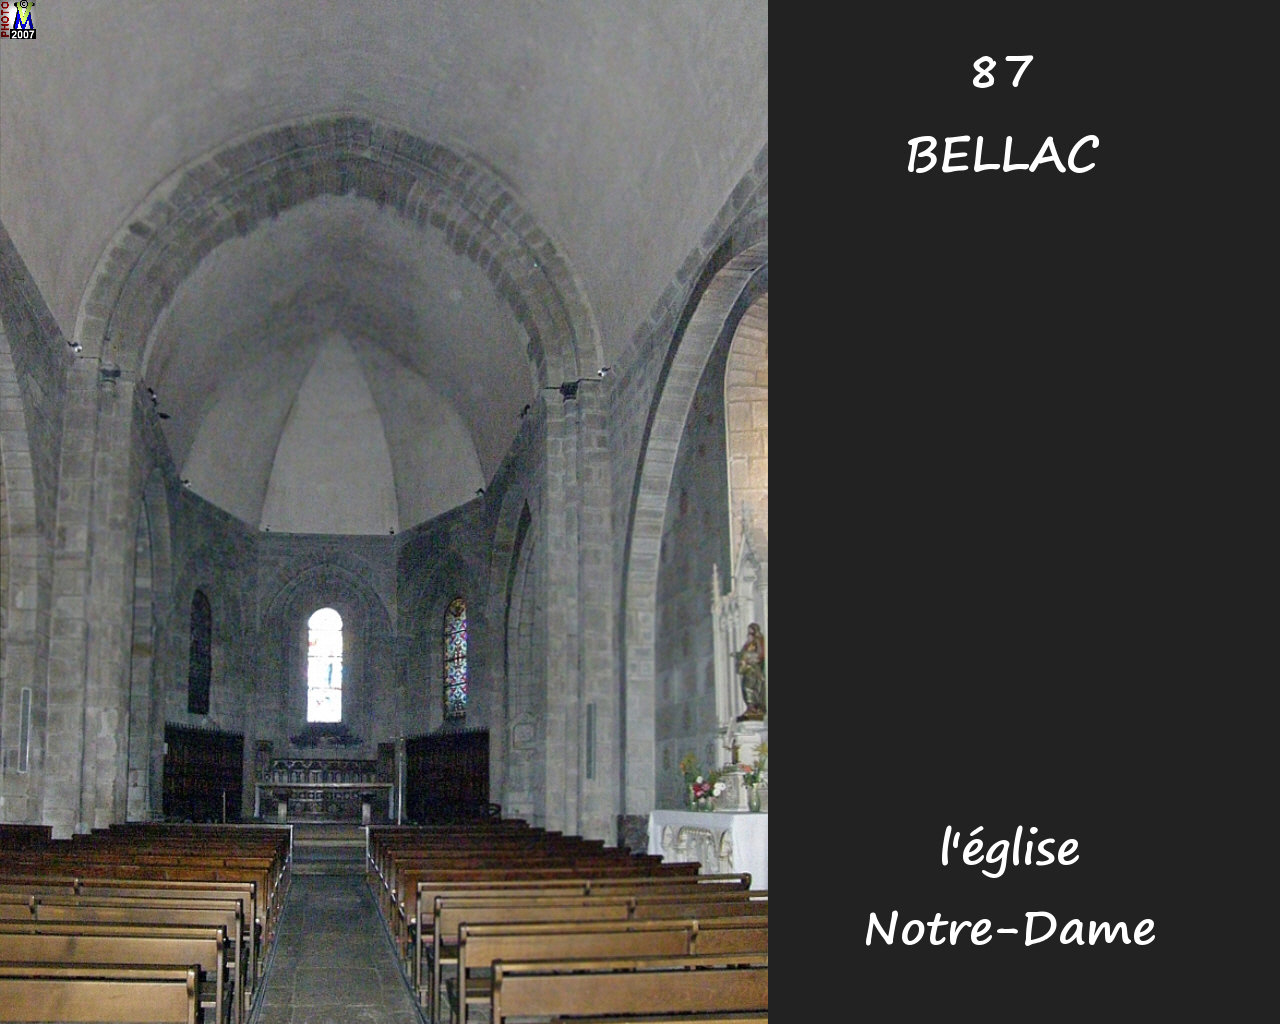 87BELLAC_eglise_202.jpg